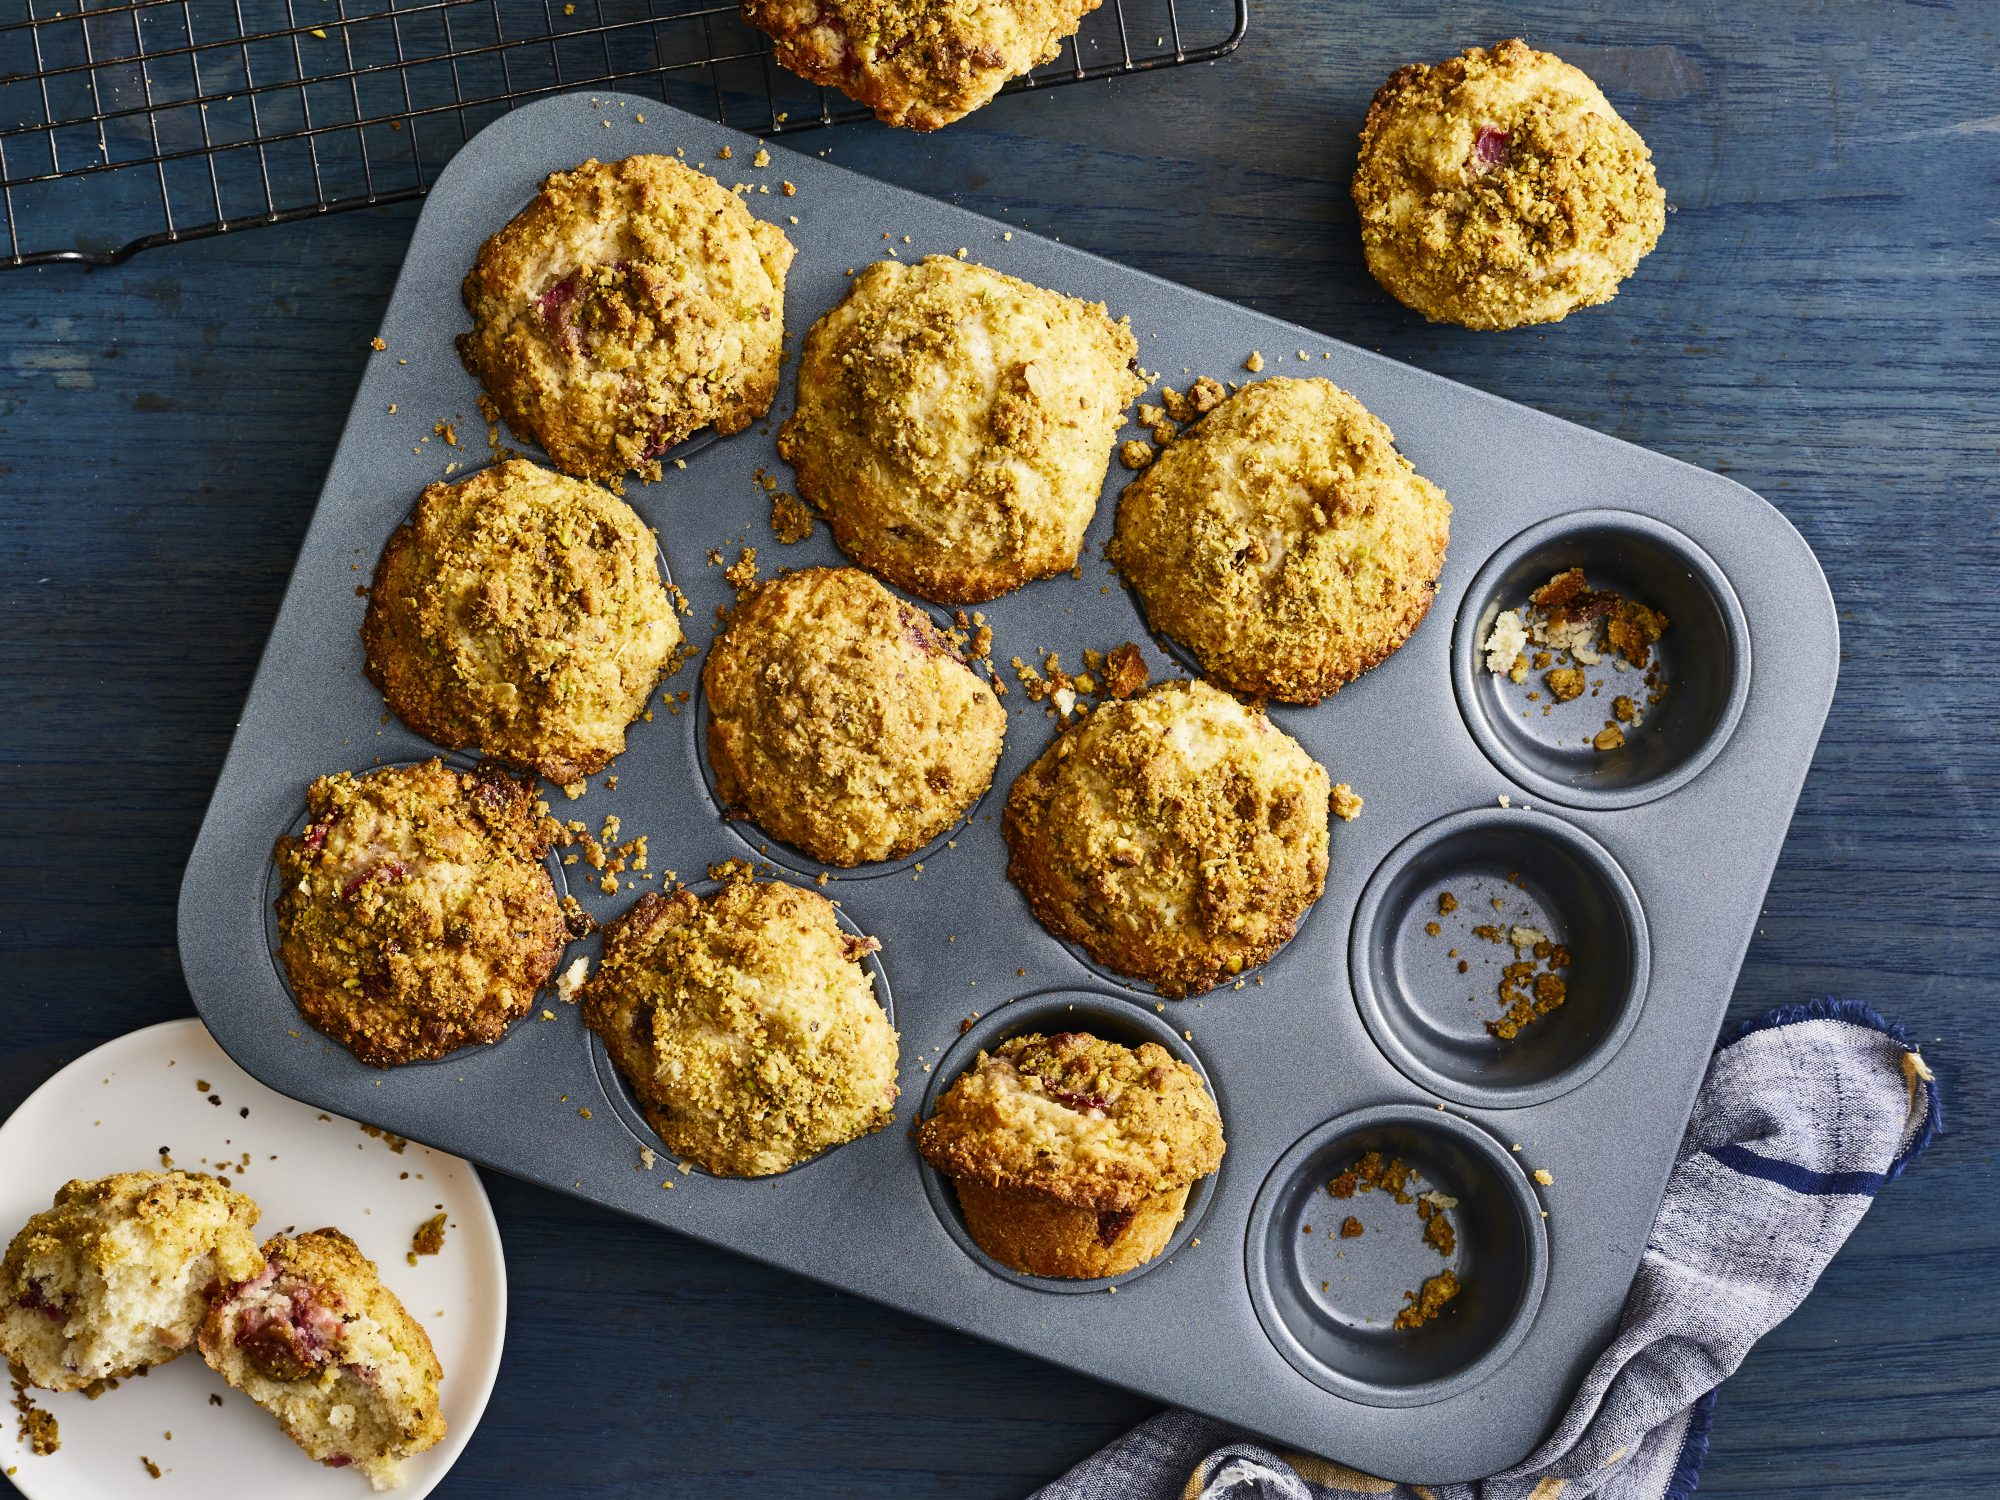 <p>Roasted Strawberry-Rhubarb Muffins with Pistachio Streusel</p>